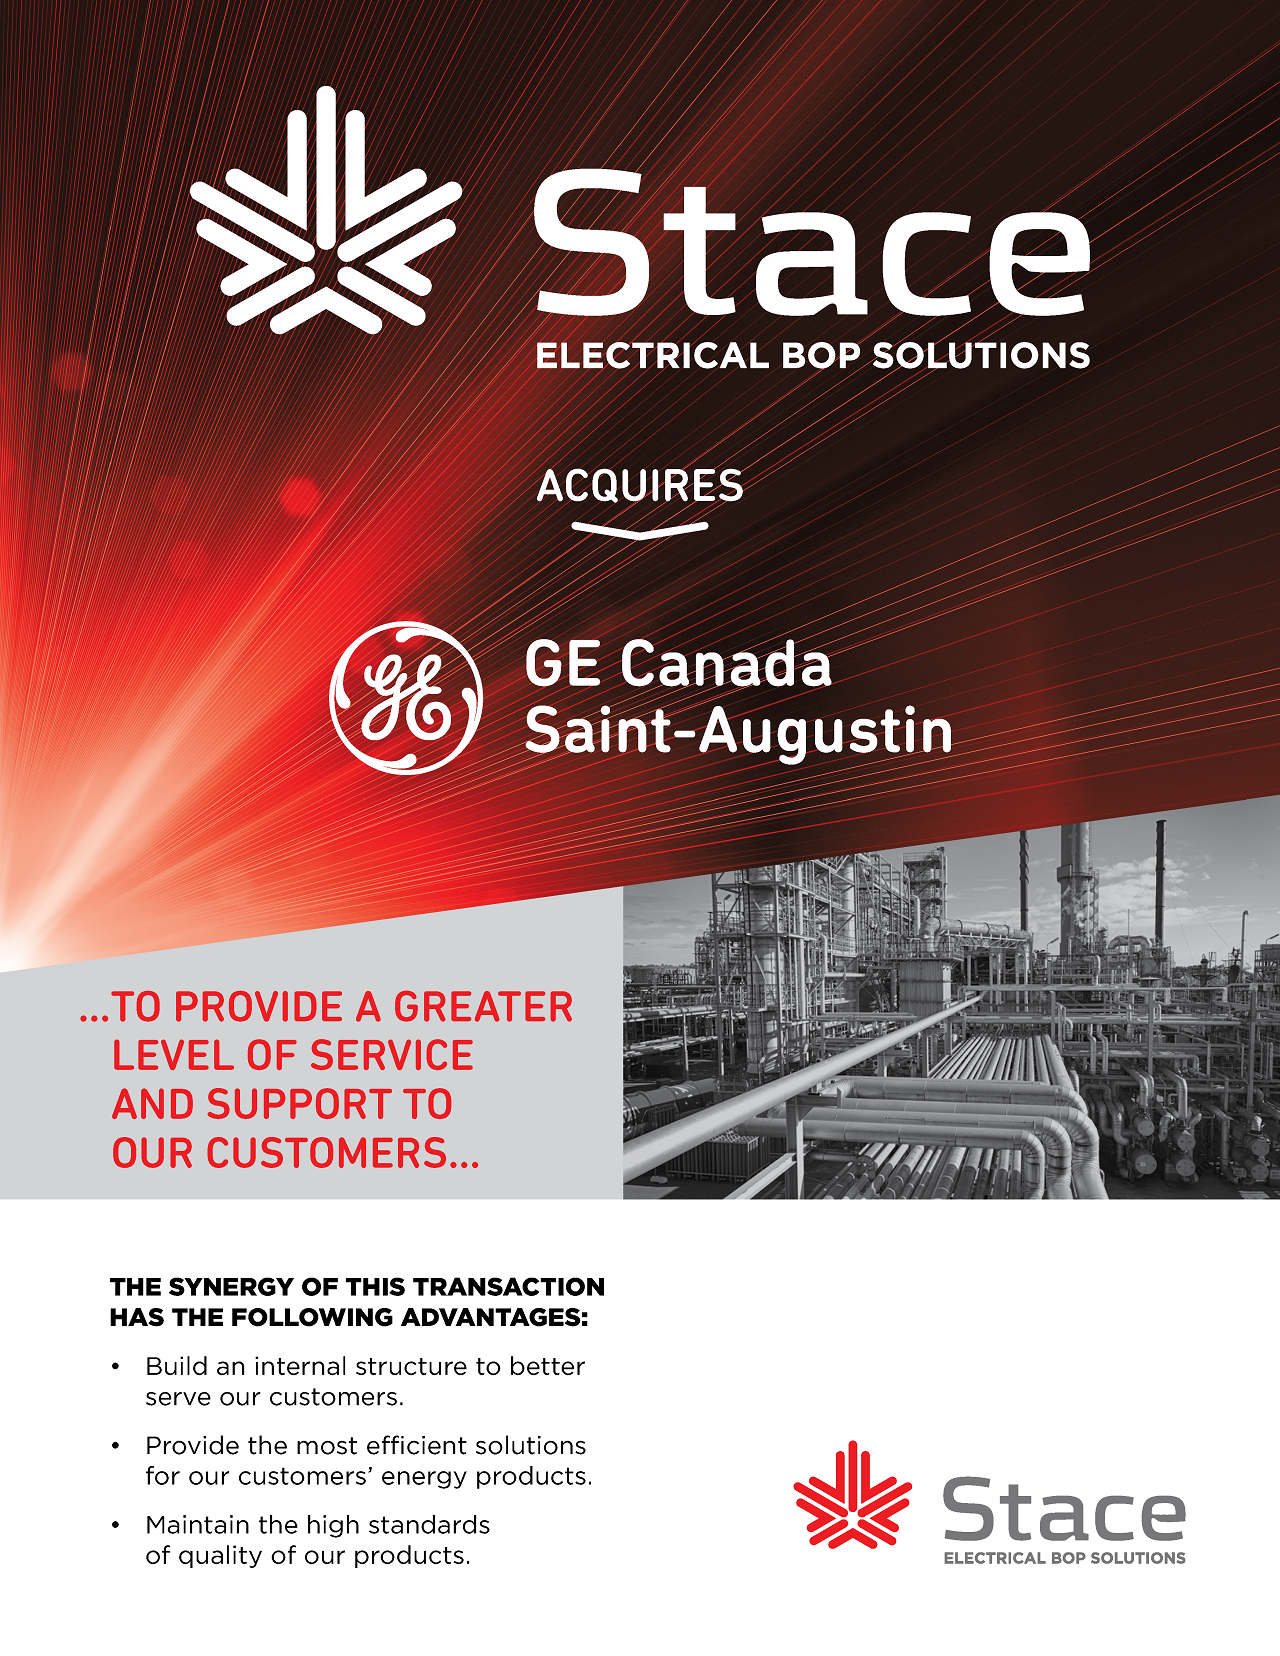 Stace Acquires GE St-Augustin